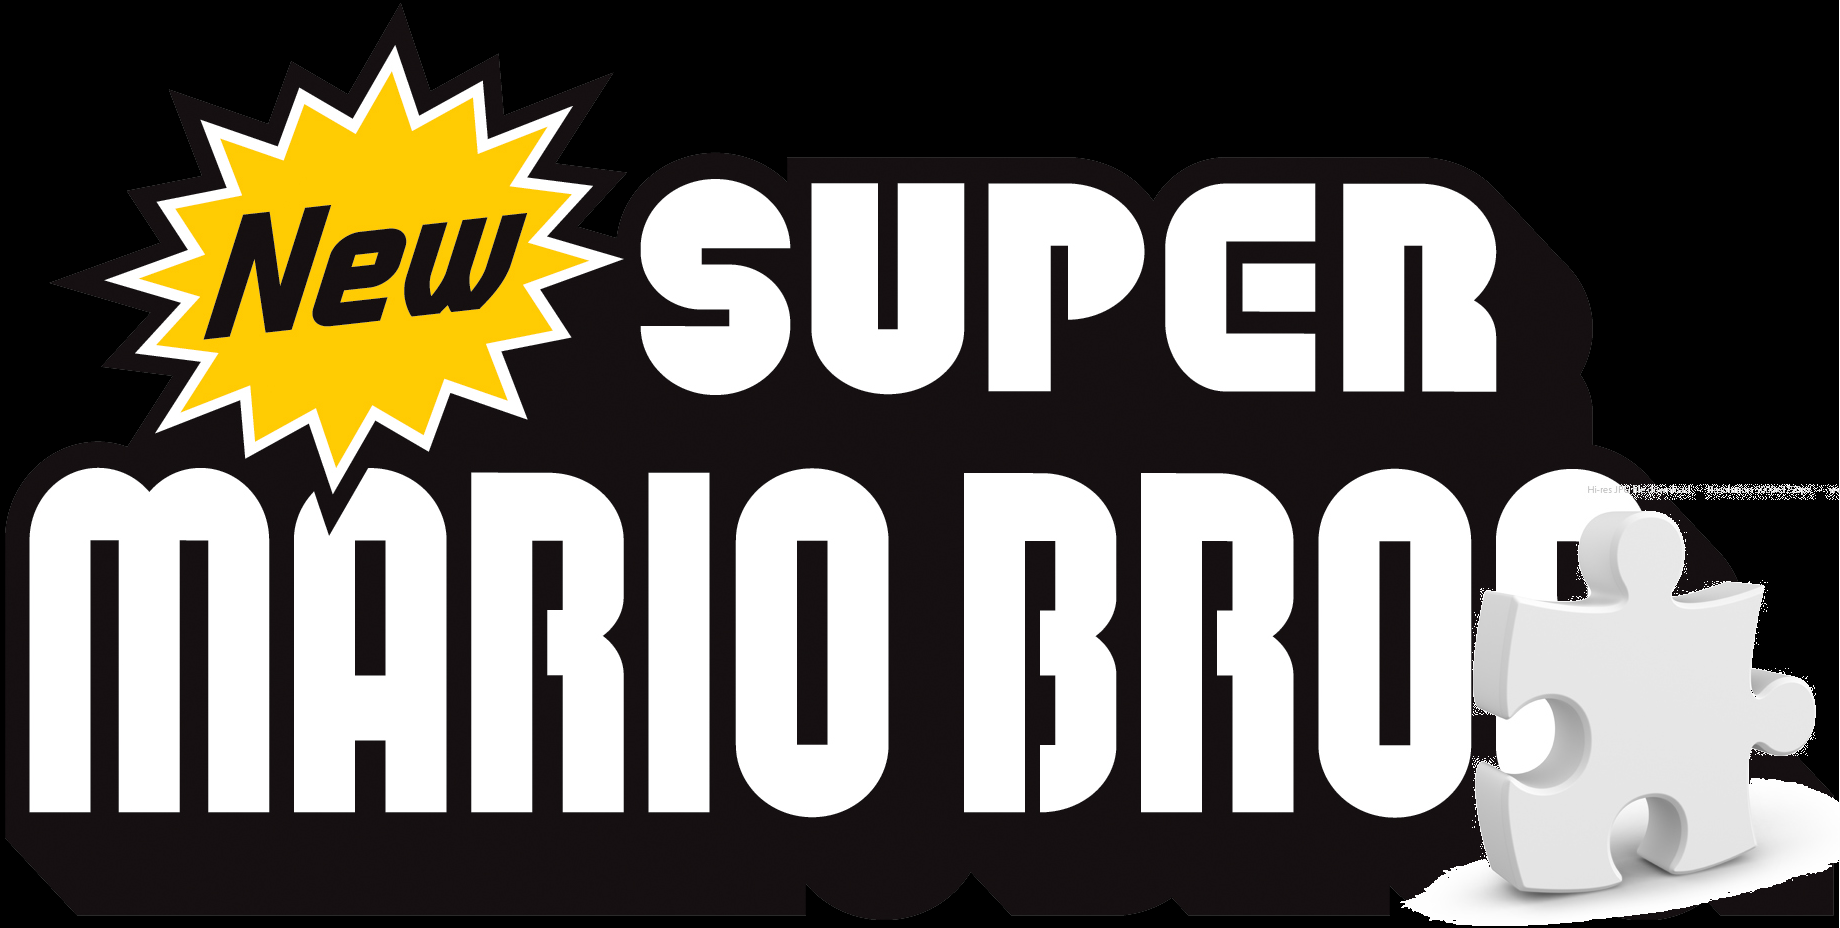 The Nsmb Hacking Domain Creating My Own First New Super Mario